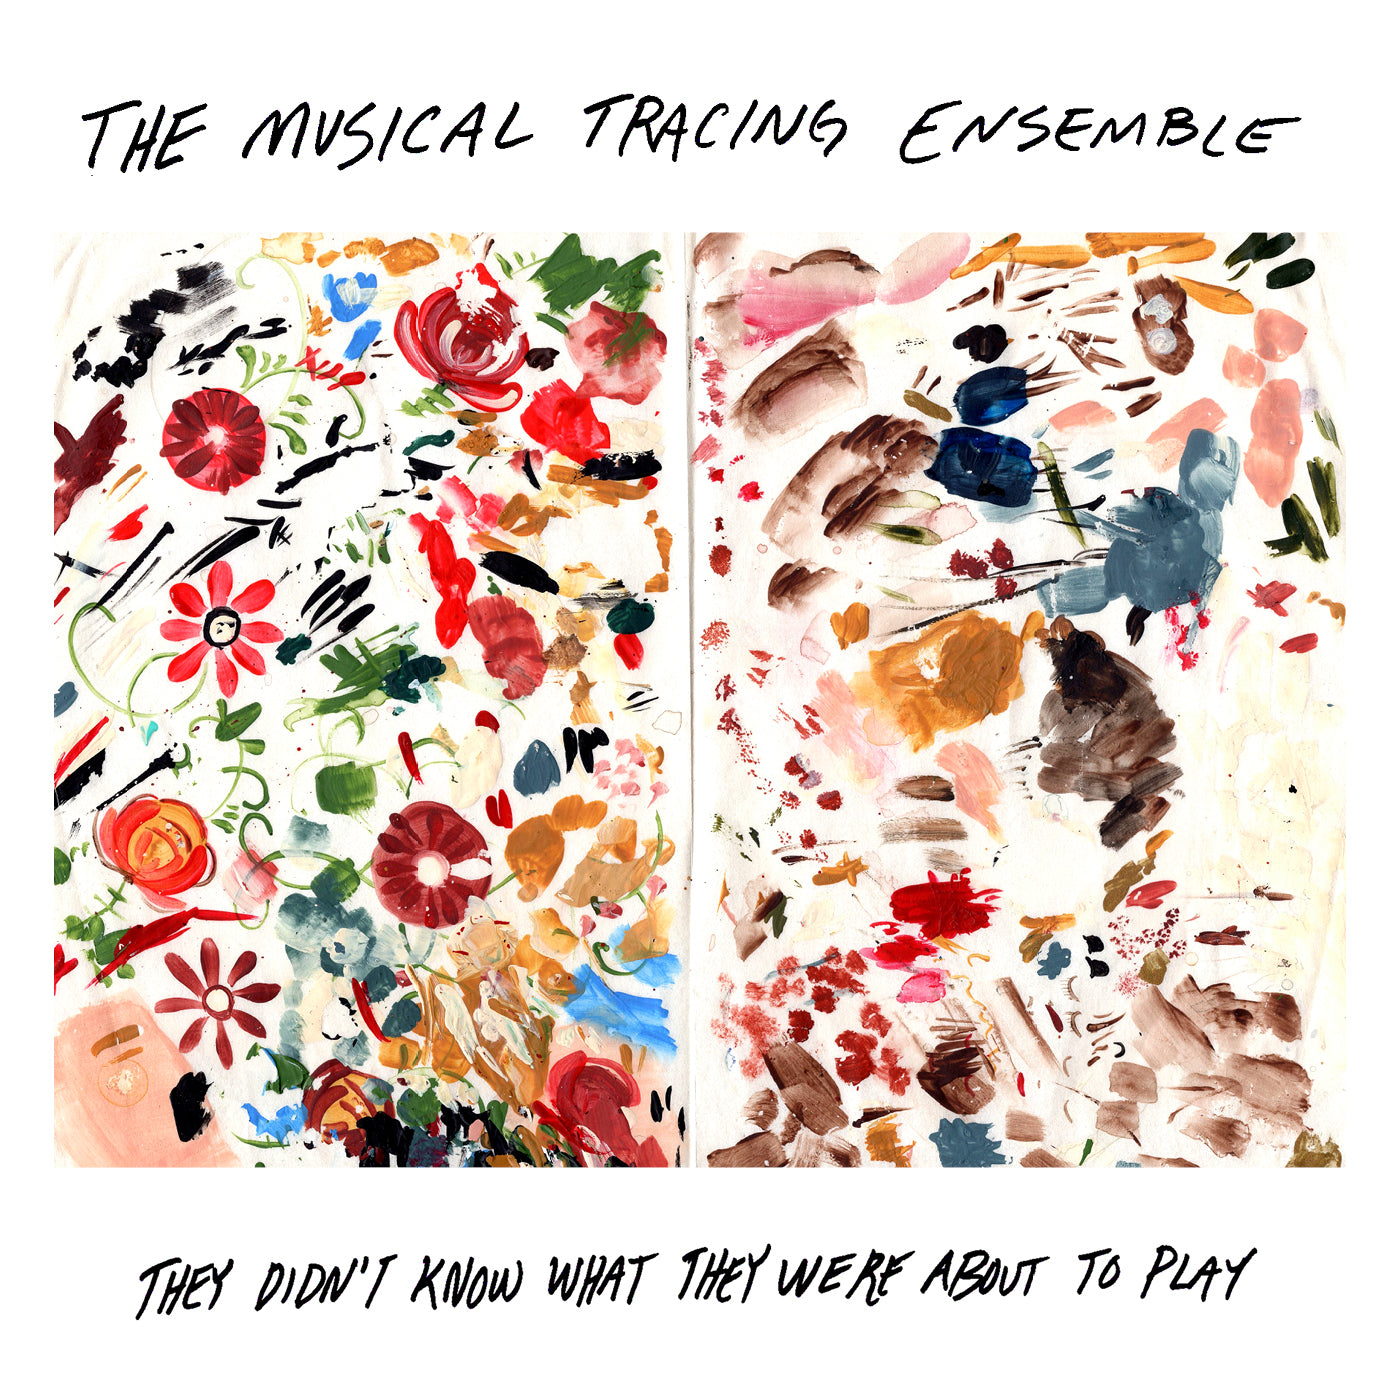 THE MUSICAL TRACING ENSEMBLE | Cassette Release Show